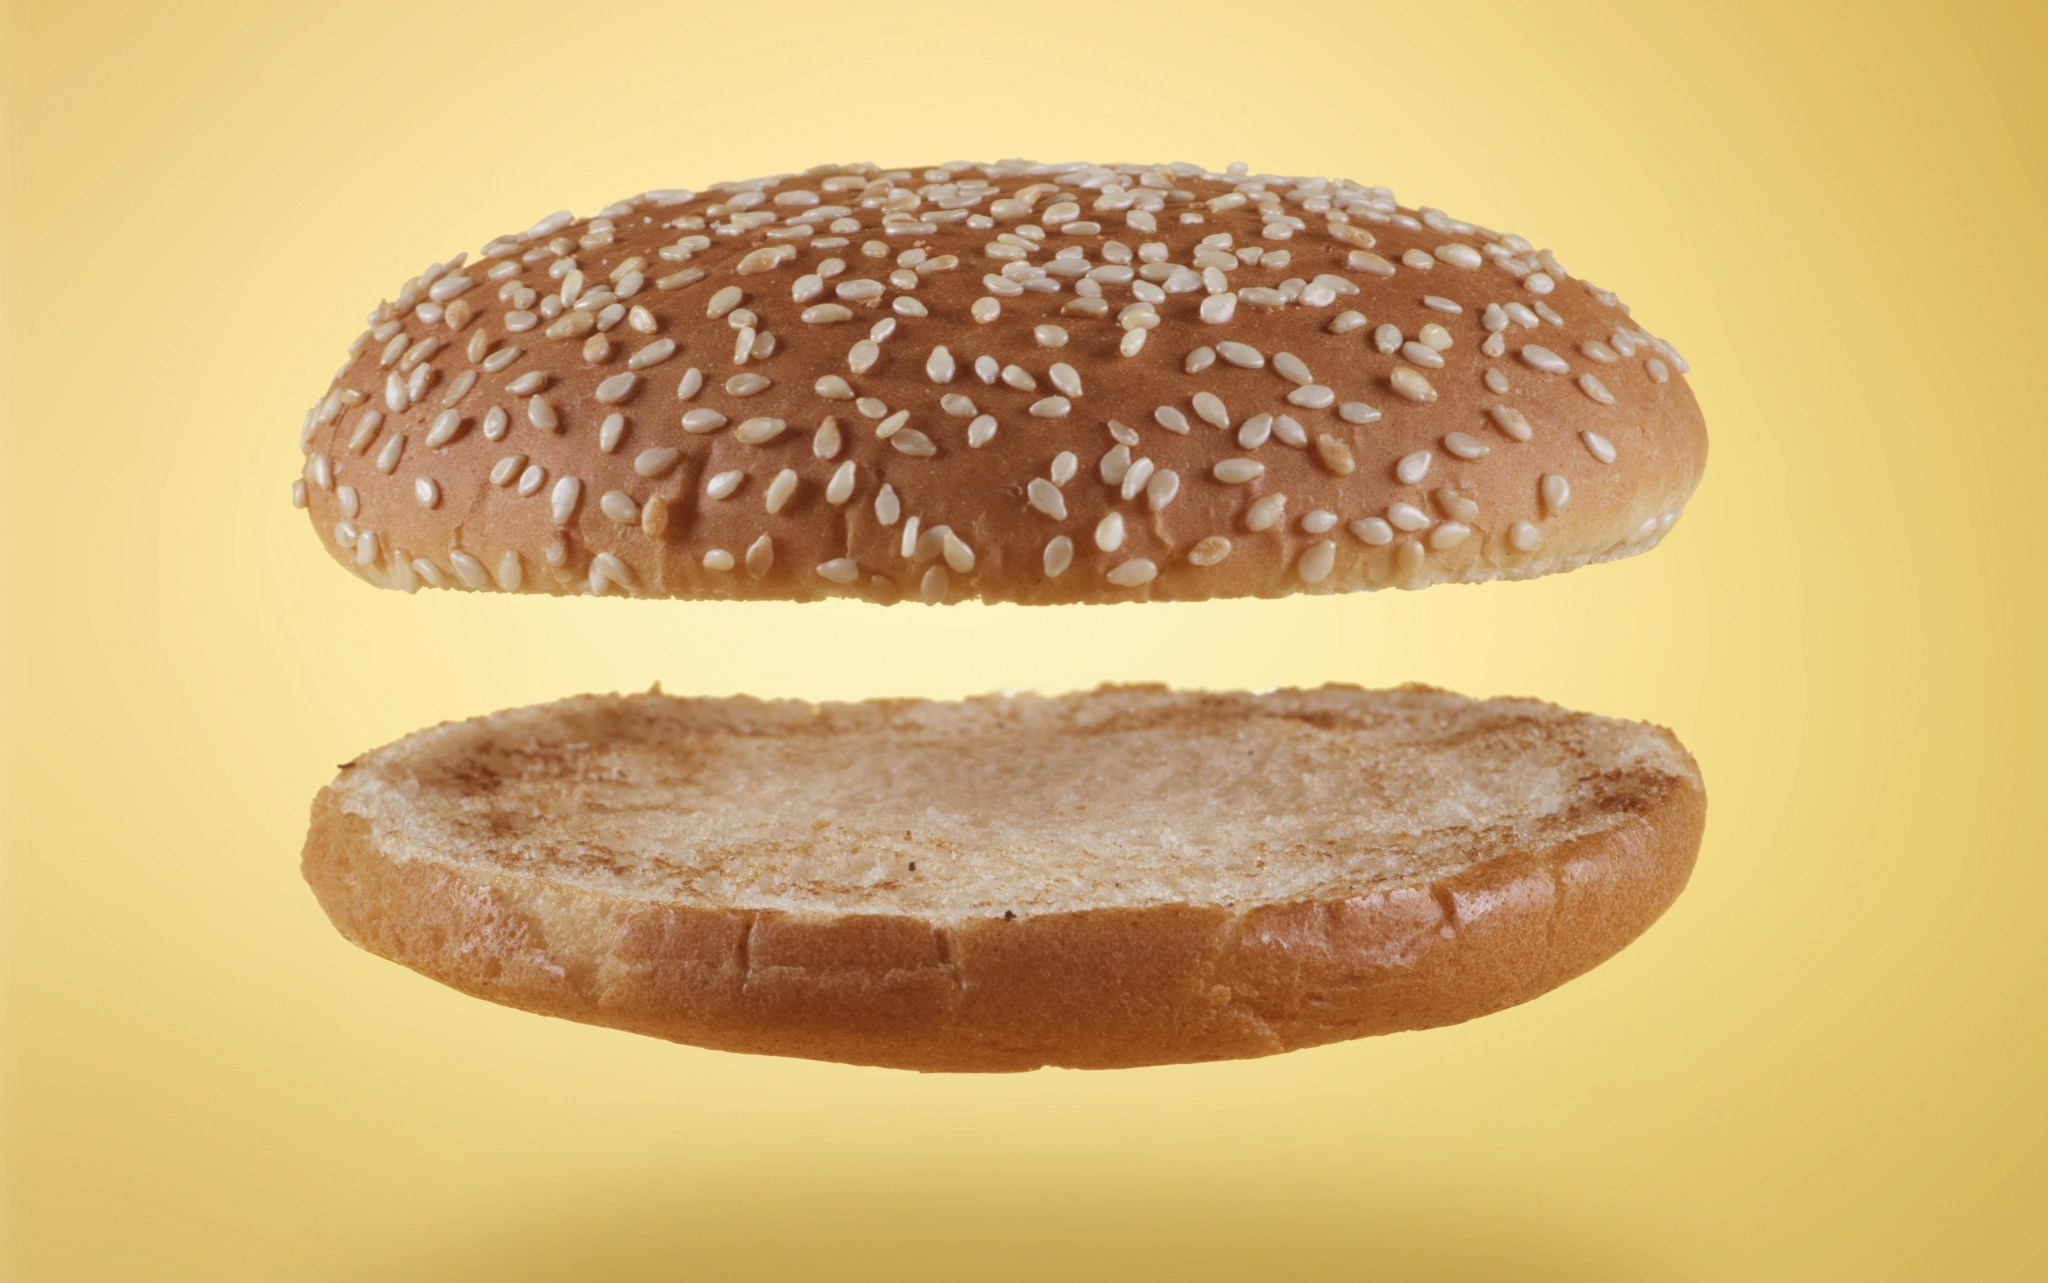 Where did the term 'nothing burger' actually originate?